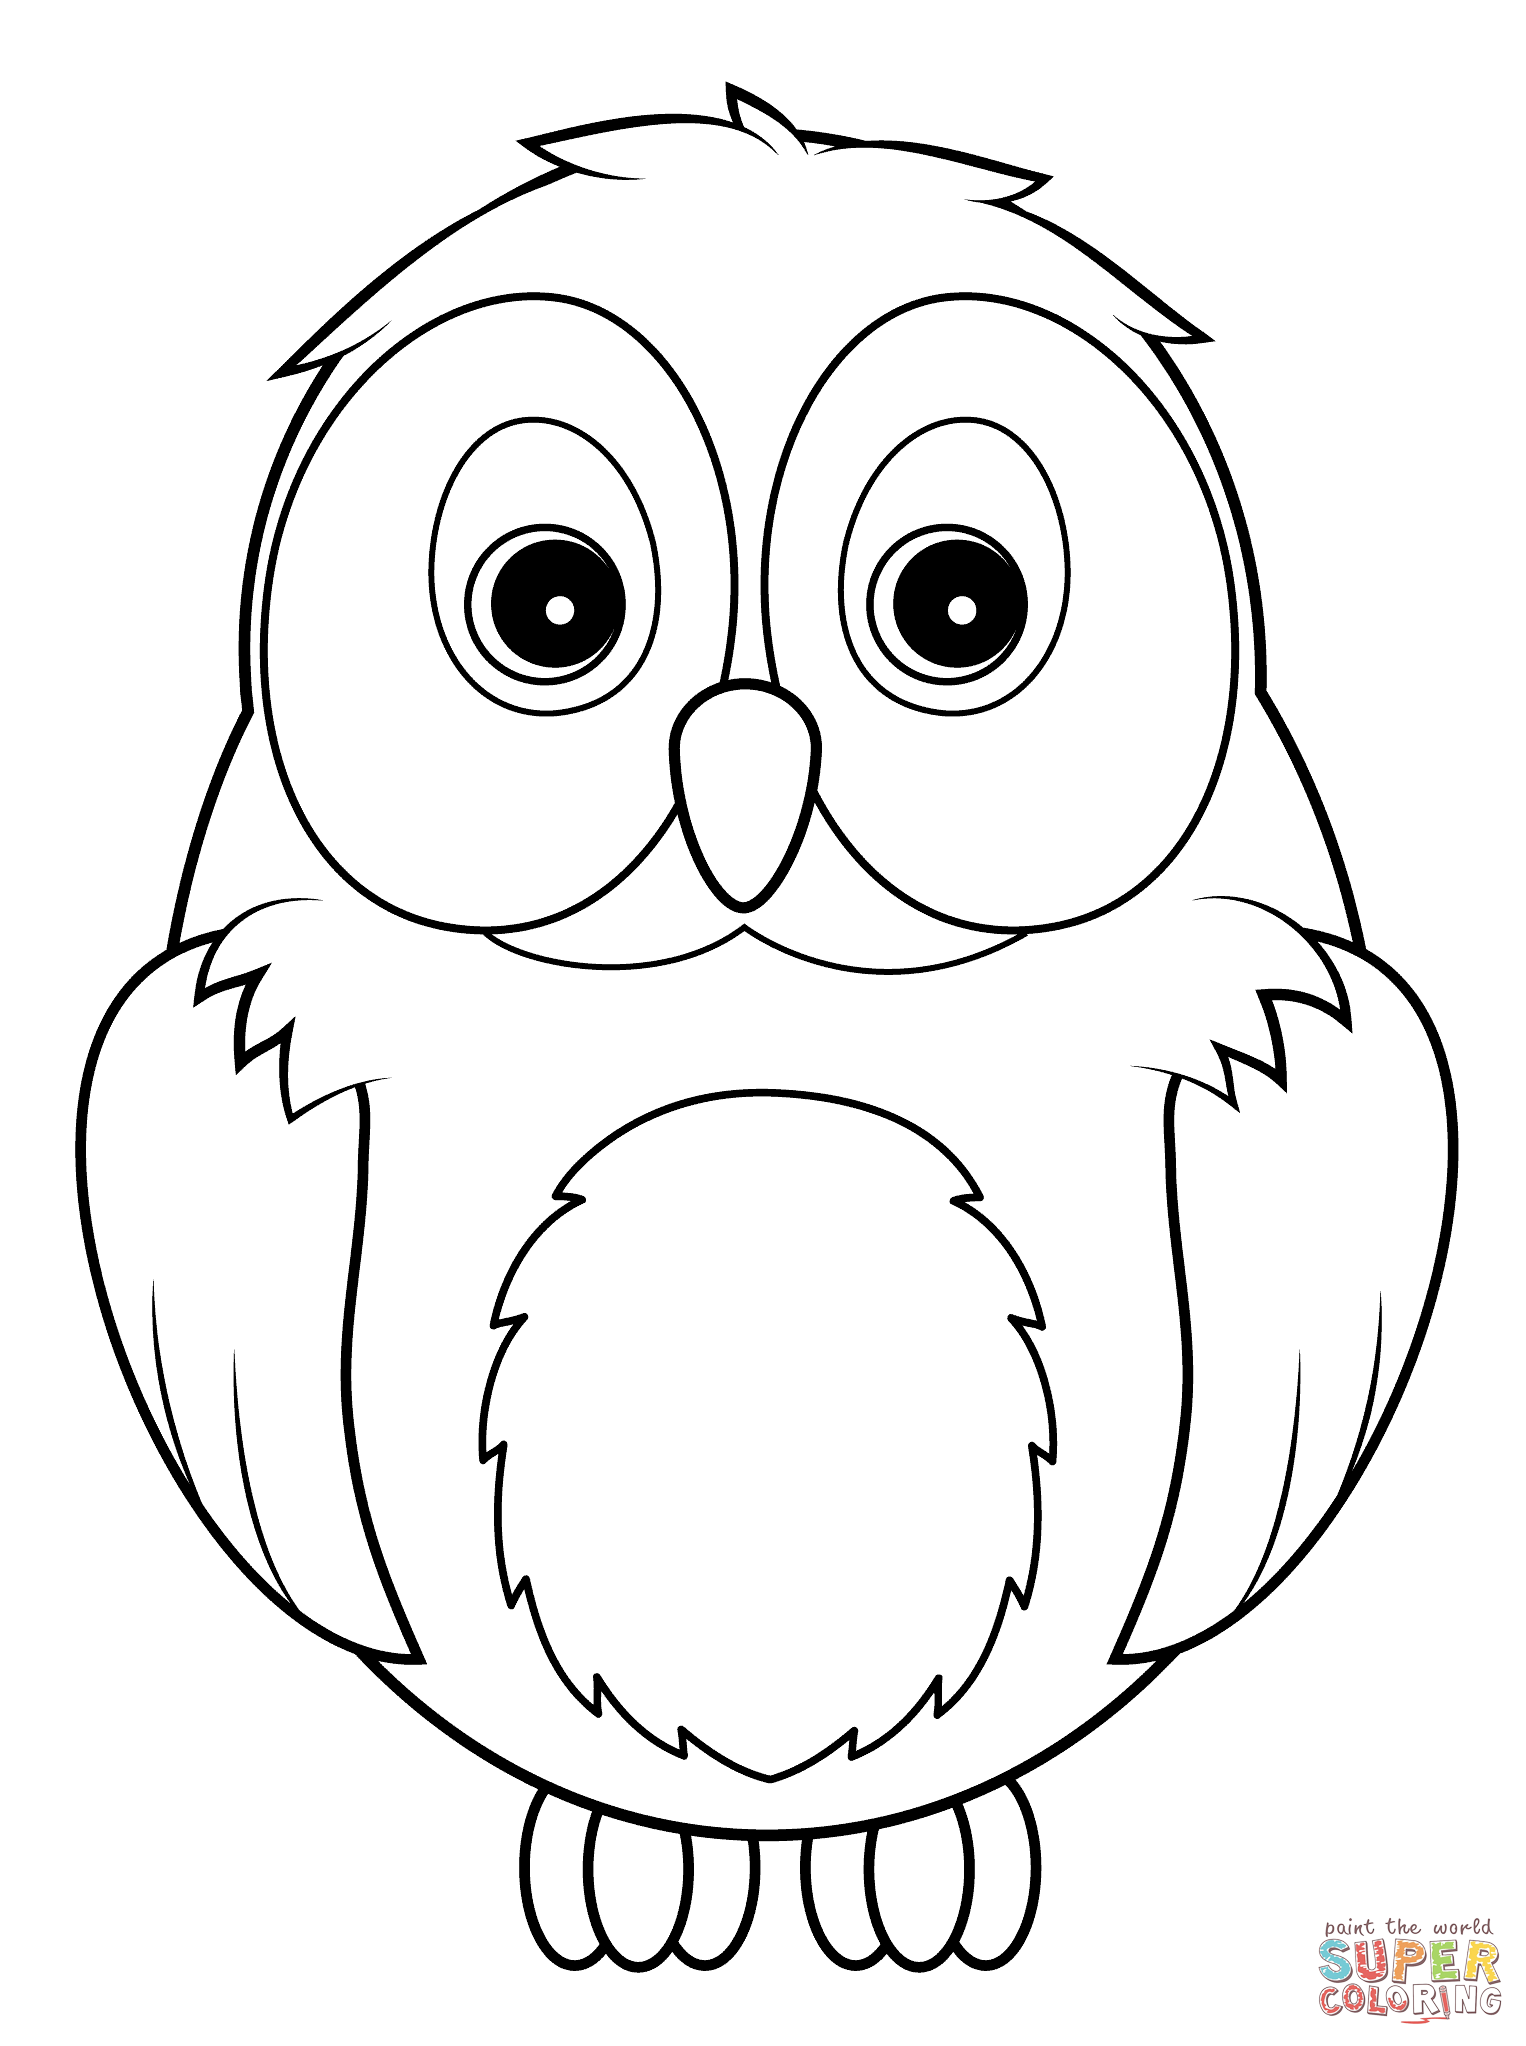 printable pictures of owls baby owl coloring pages kidsuki owls of pictures printable